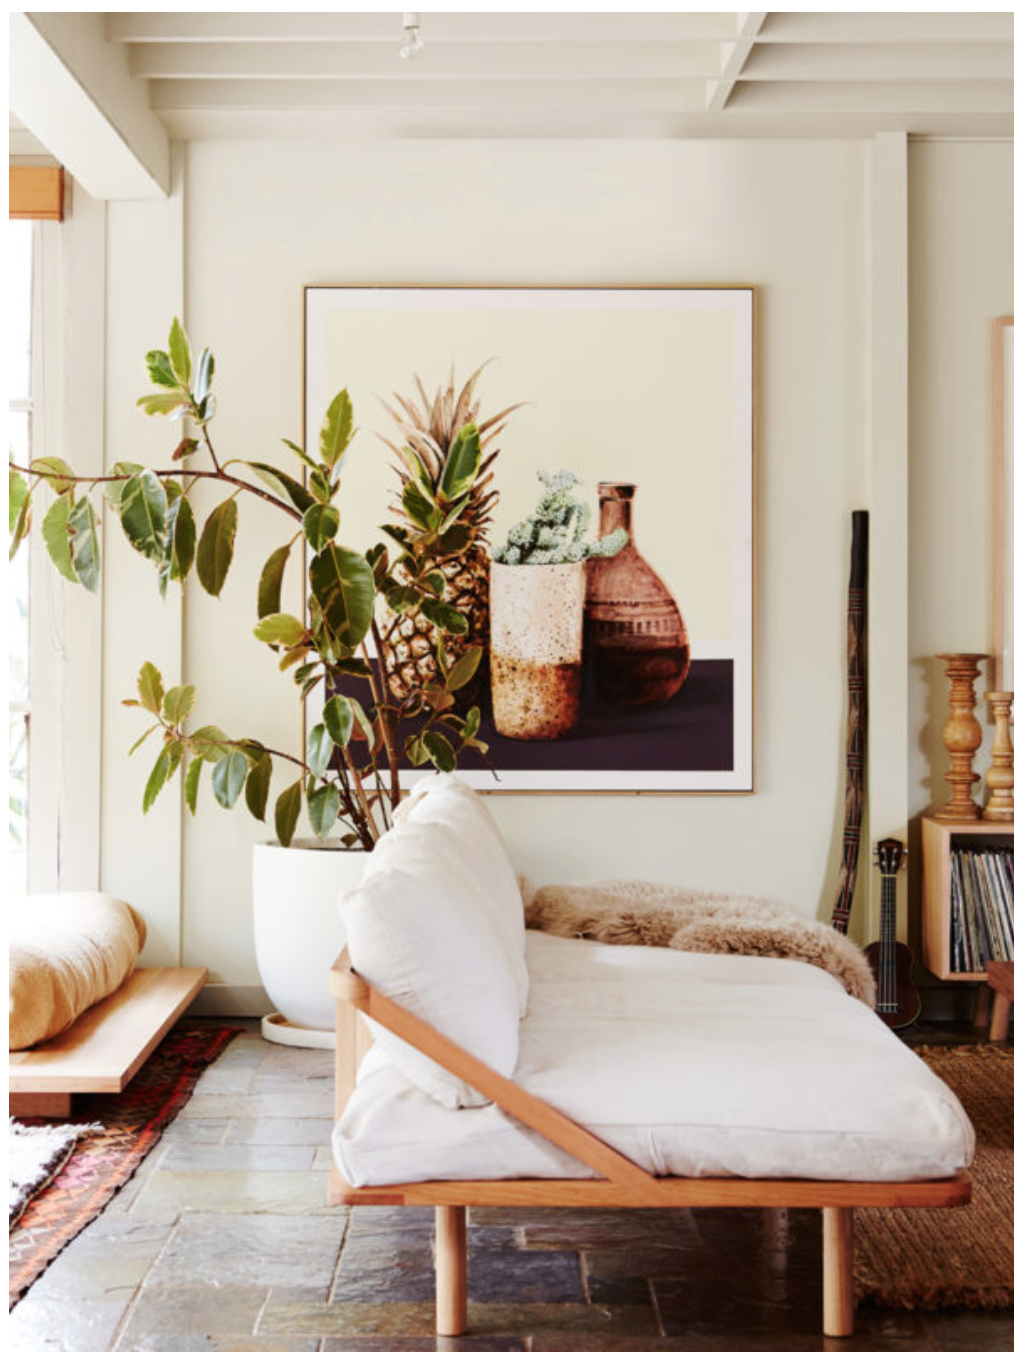 bohemian sofa bed dual reclining rv achieve a modern living space with indoor plants wood and natural textiles